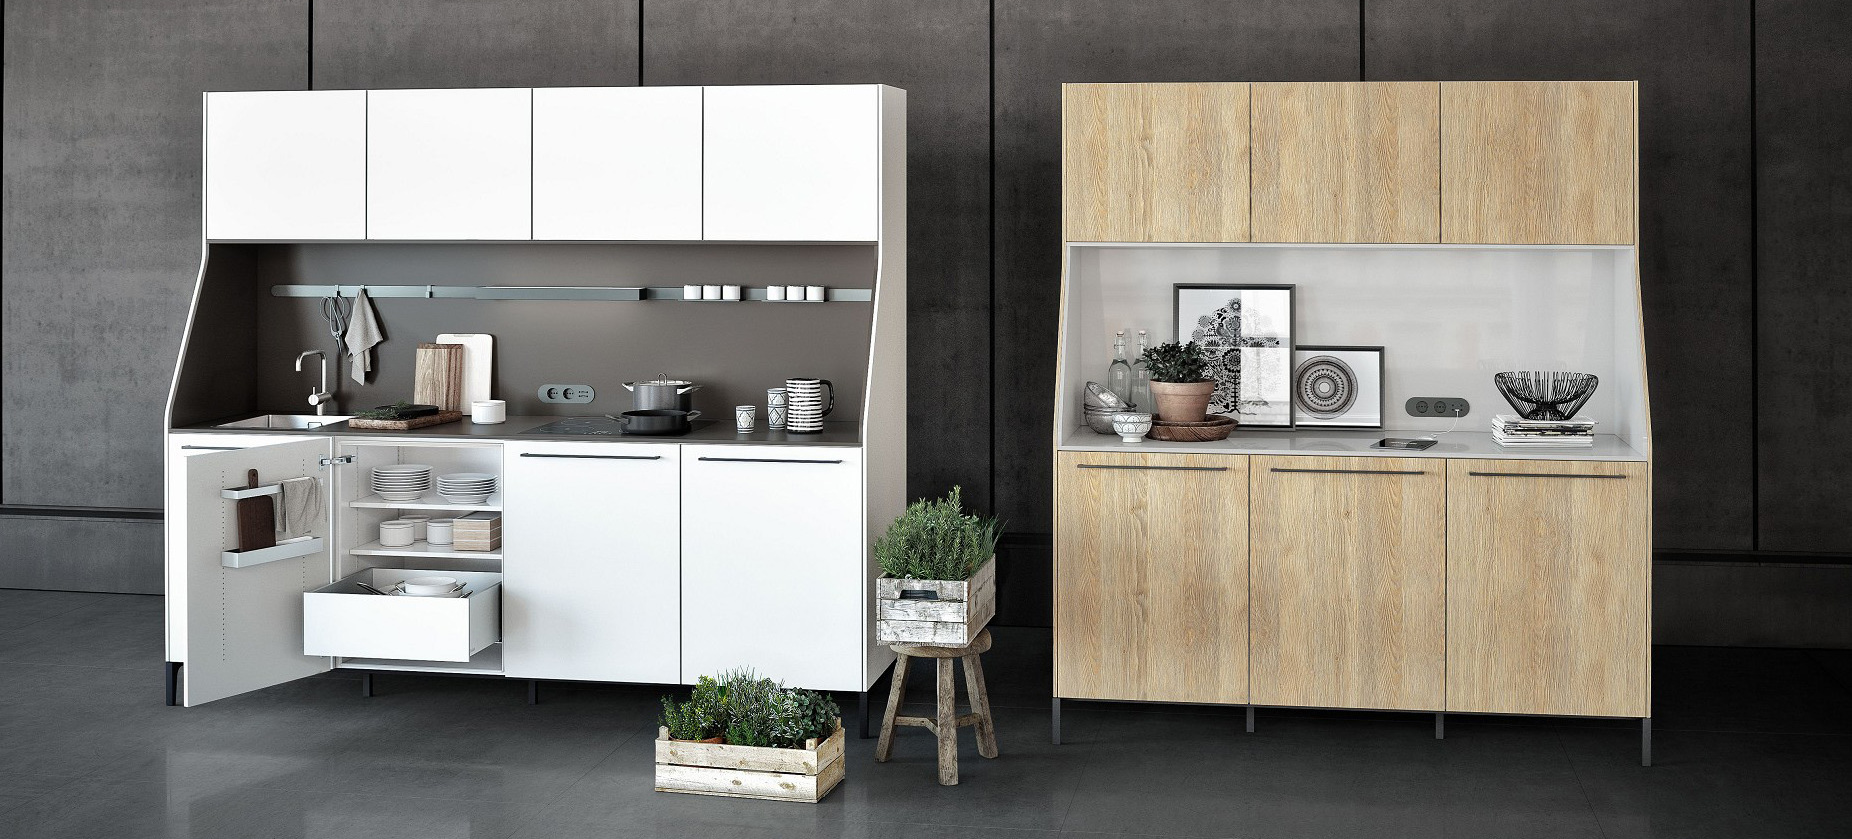 Why siematic is the right high end kitchen company for you